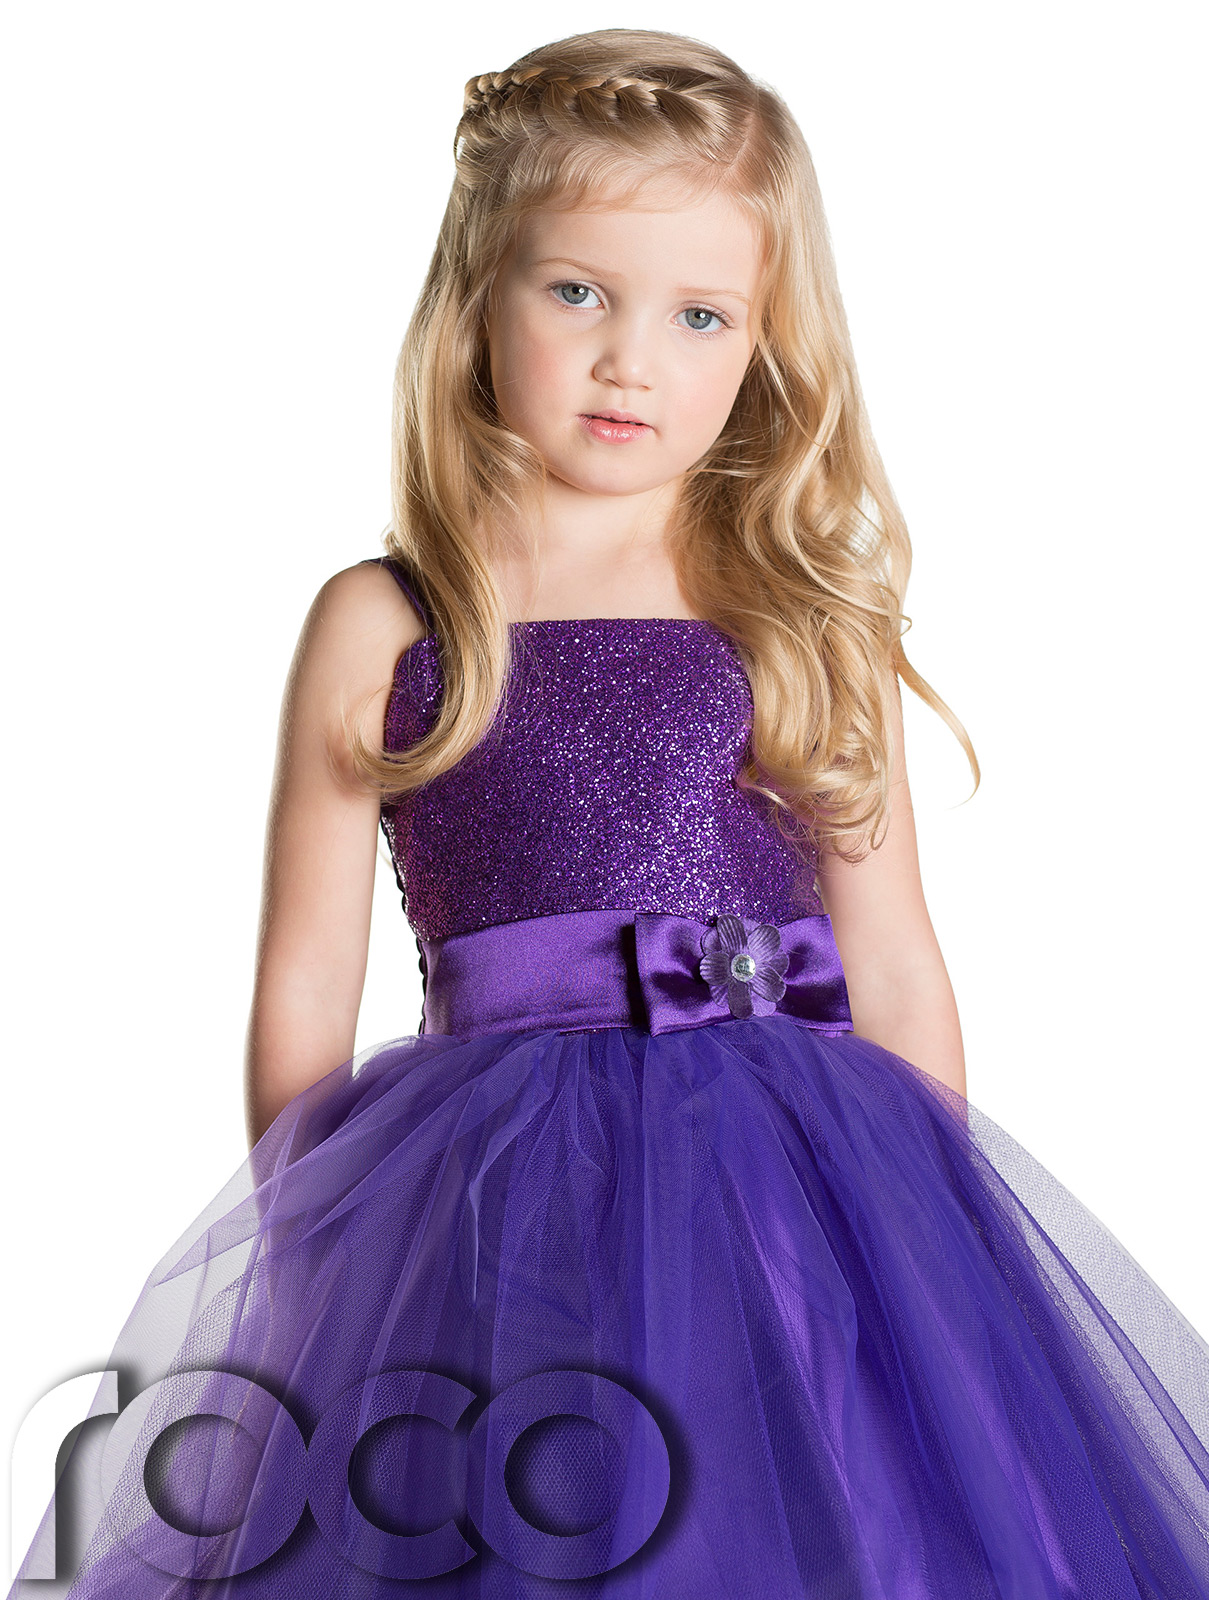 Shop for purple girls dresses in variations of Purple, Lavender, Lilac, plum, dresses. Baby dresses, girls, pageants, boys tuxedo vest and tie set, and 5 piece tuxedo with lilac vest and tie. Girls purple dresses from Lilac to purple plum. Infant to Girls Purple Easter Dresses size 2 to